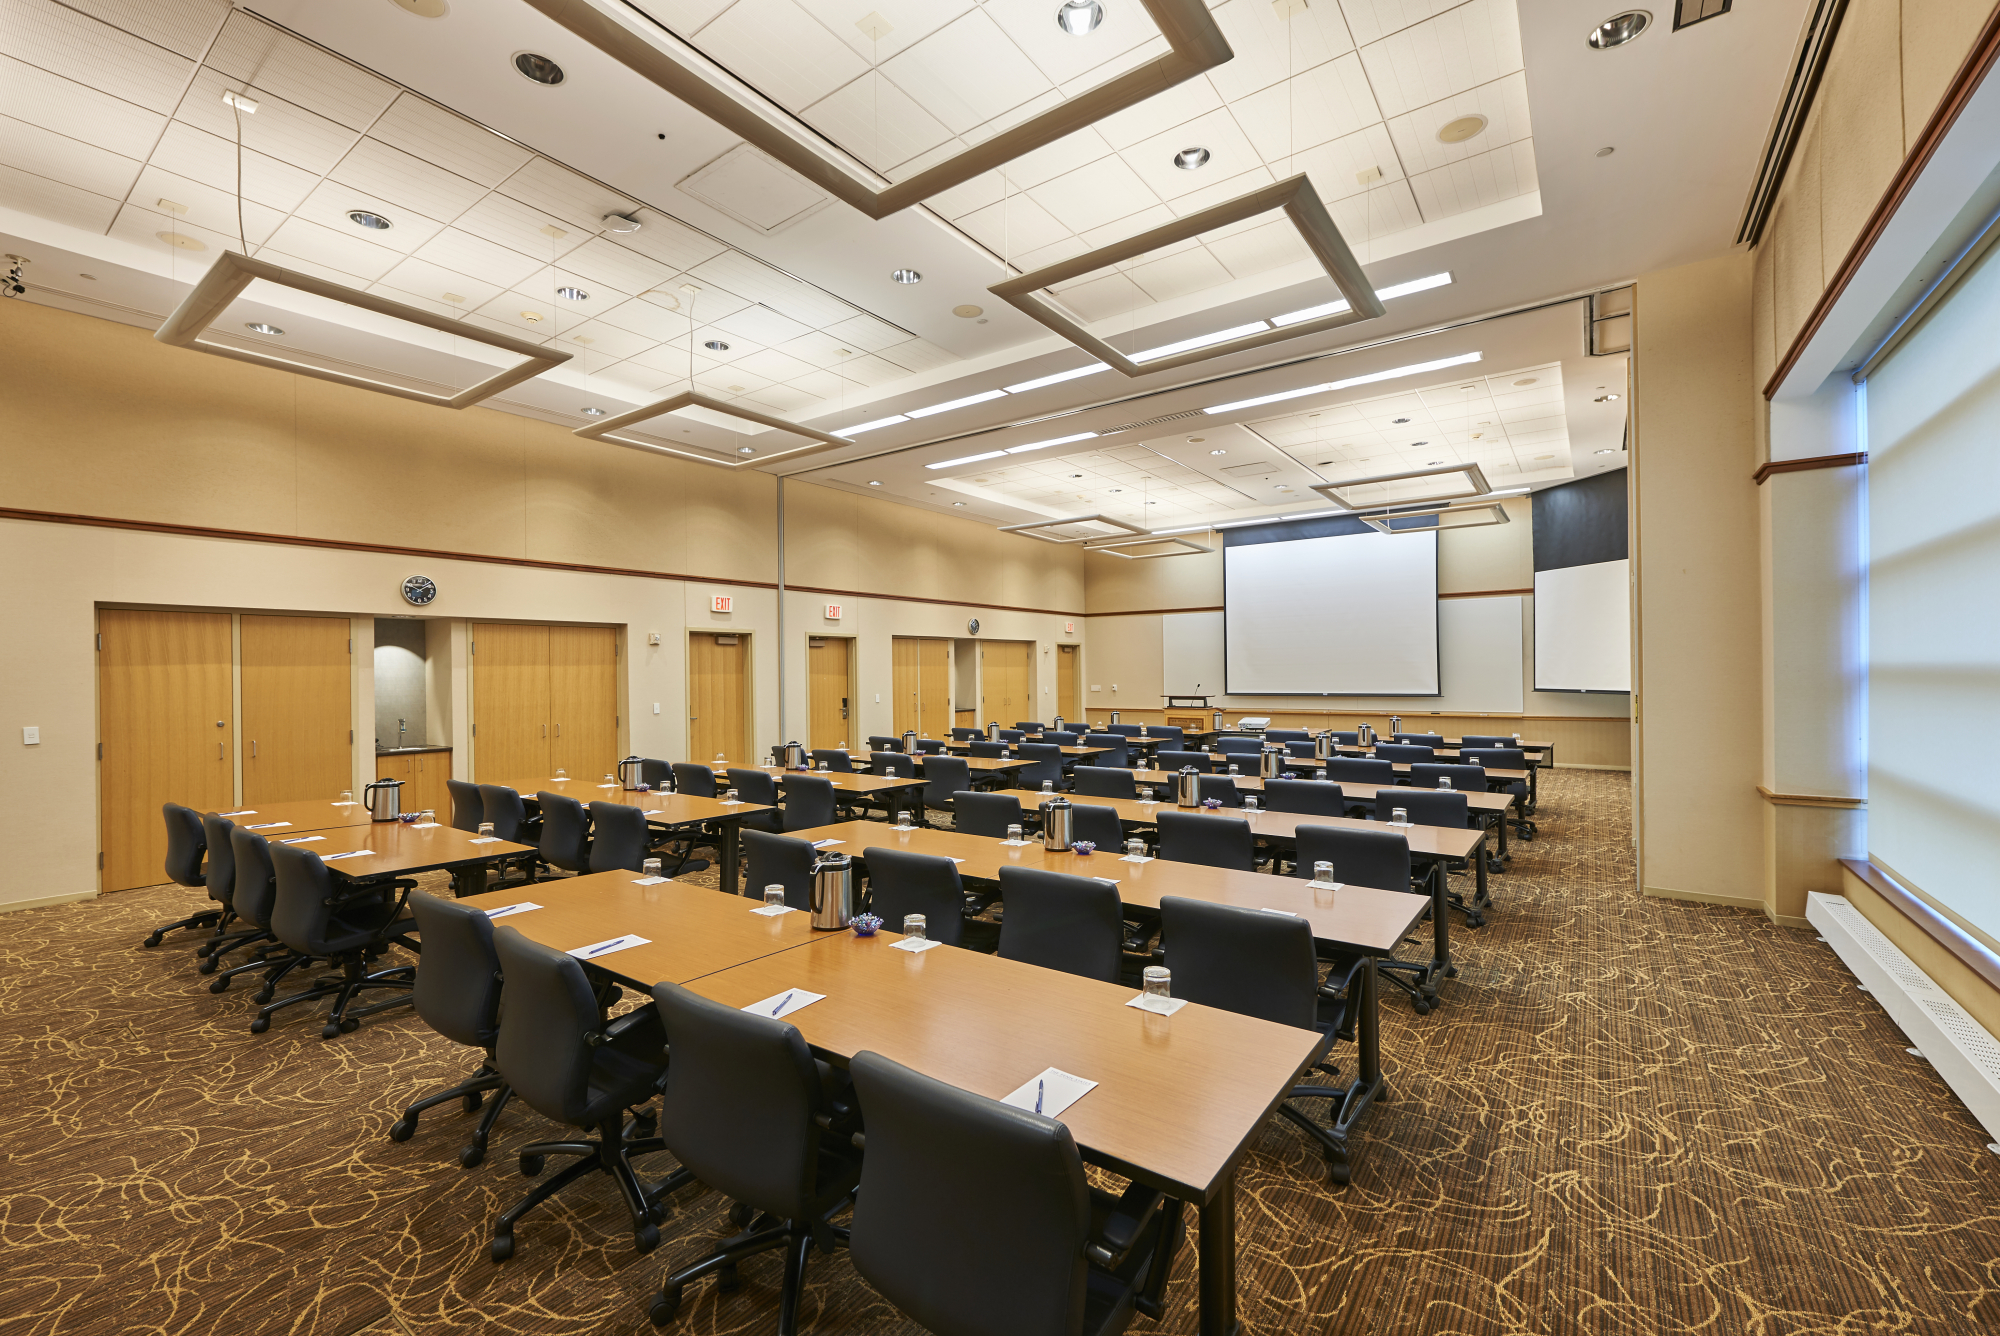 facility meeting room Facilities reservations facilities reservations is responsible for coordinating all aspects of reservations of general-use lecture rooms, conference rooms, auditoriums and theater space, athletic facilities, recreation or outdoor spaces, and.